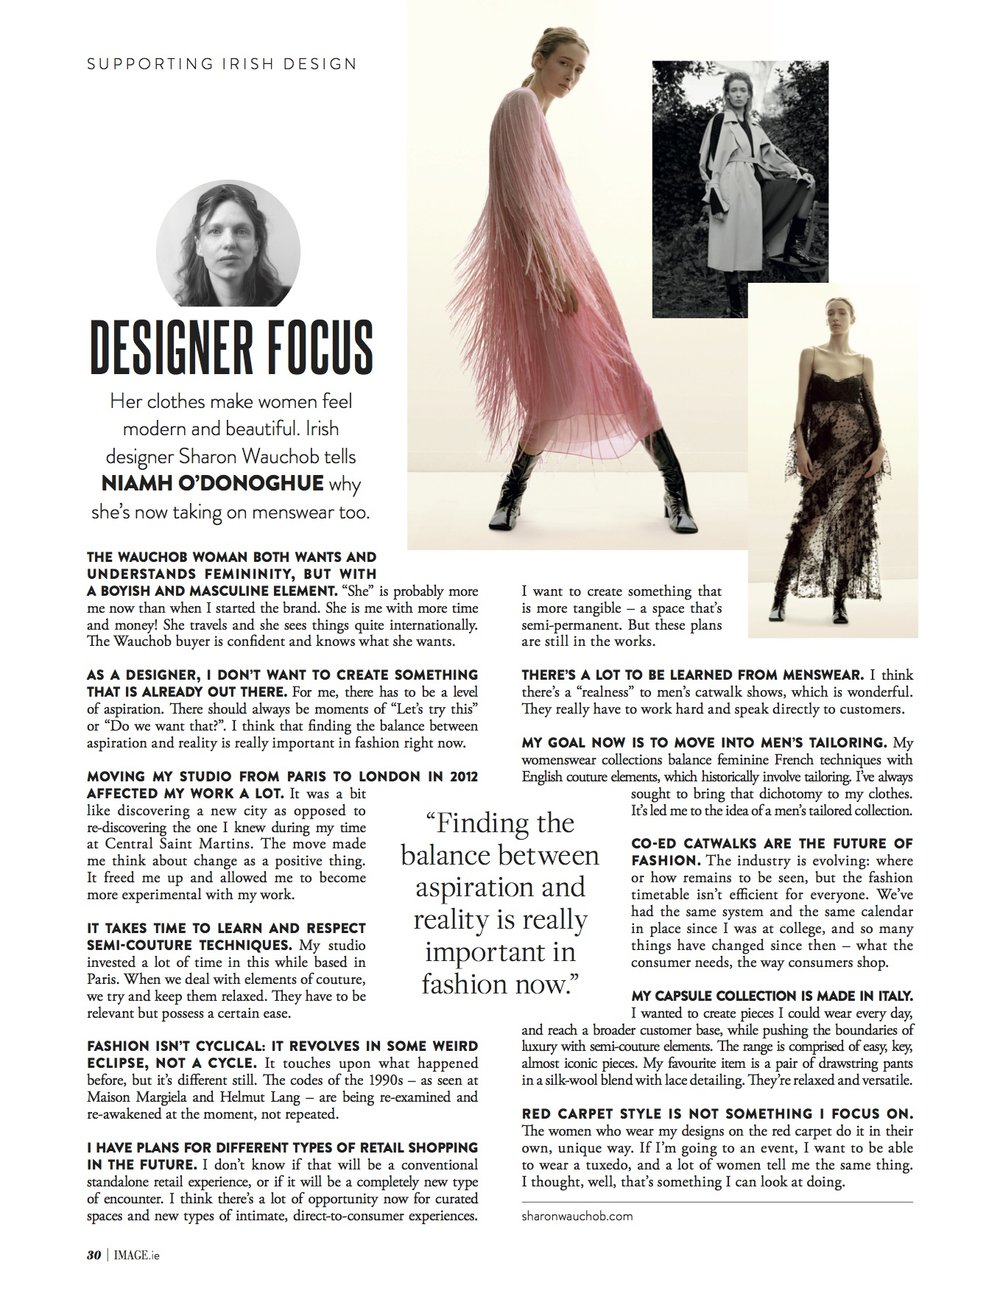 Interview with Sharon Wauchob in the July issue of IMAGE Magazine, 2018